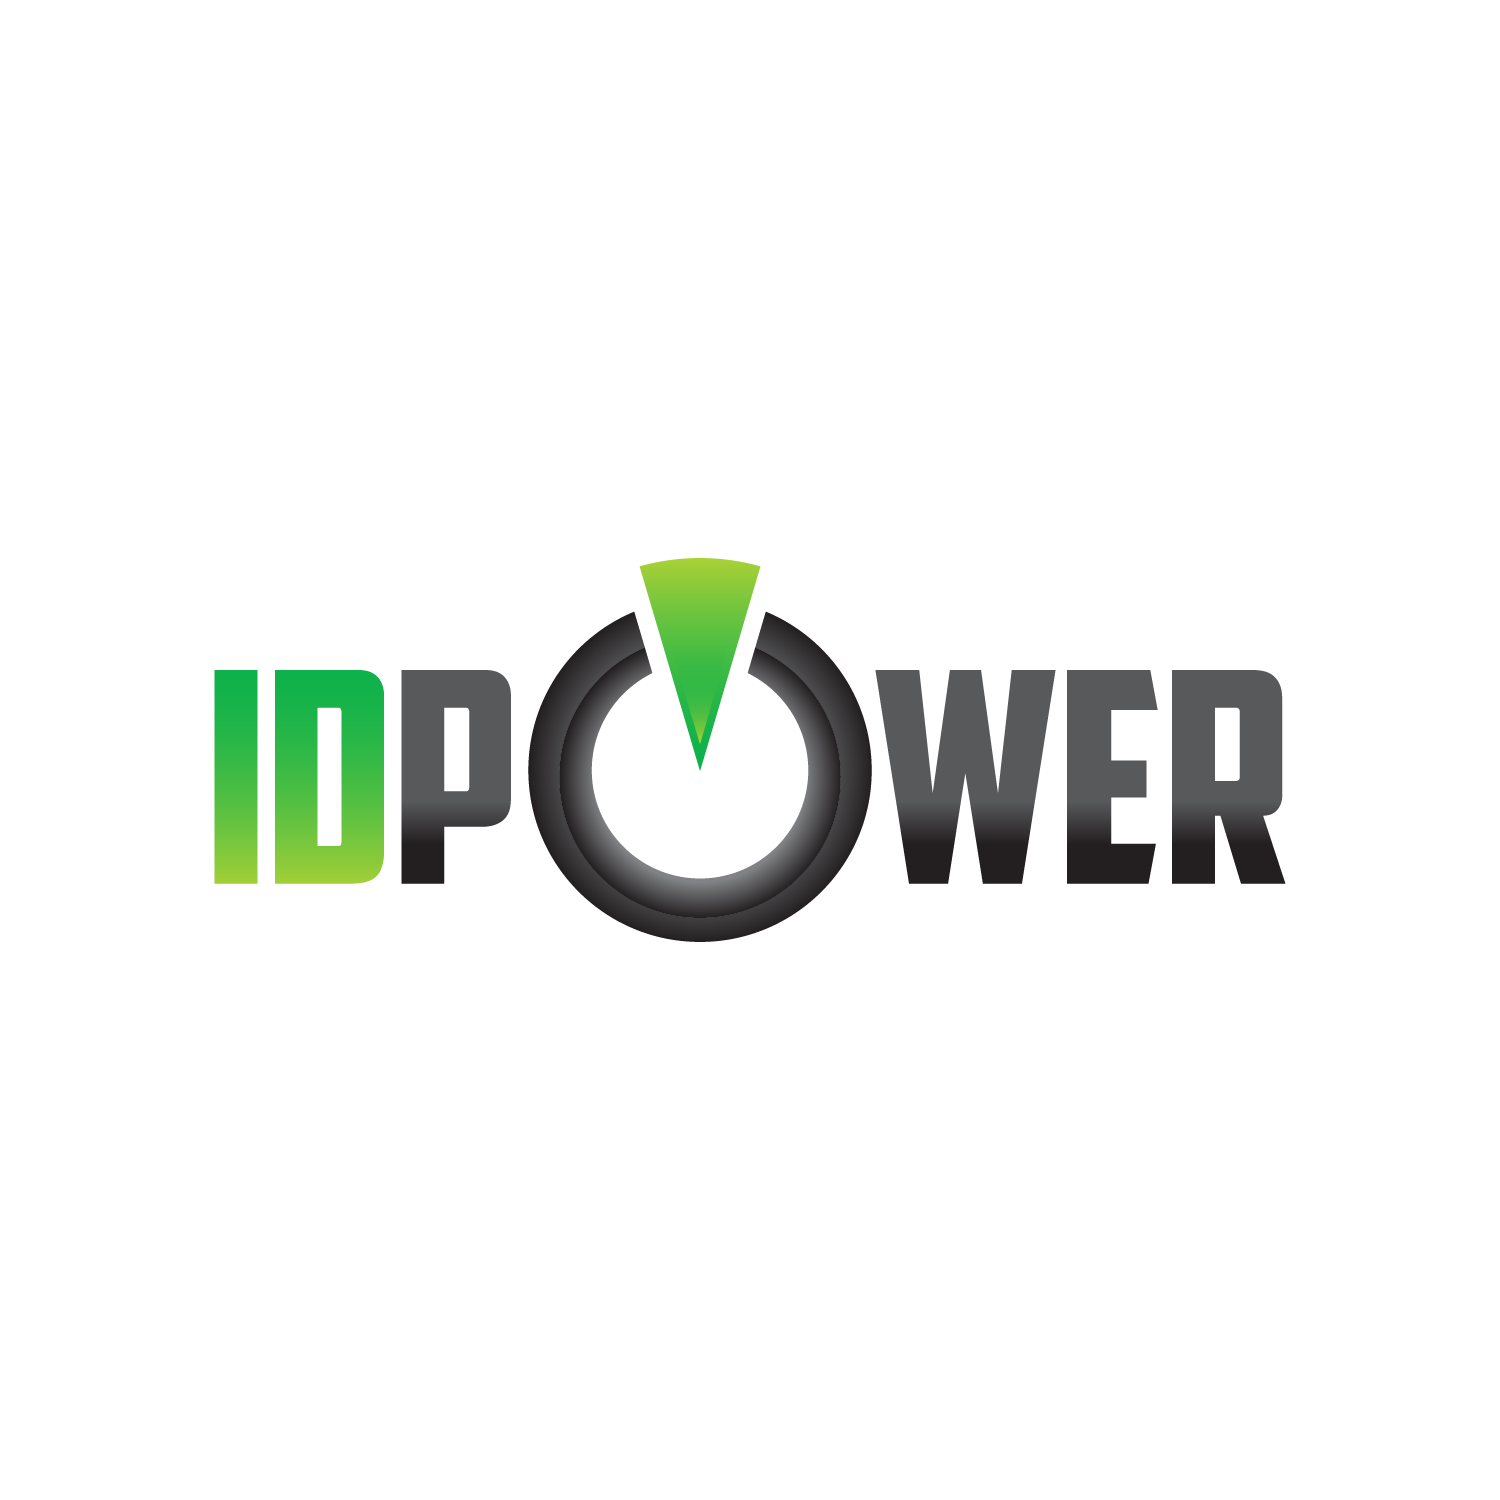 ID Power logo